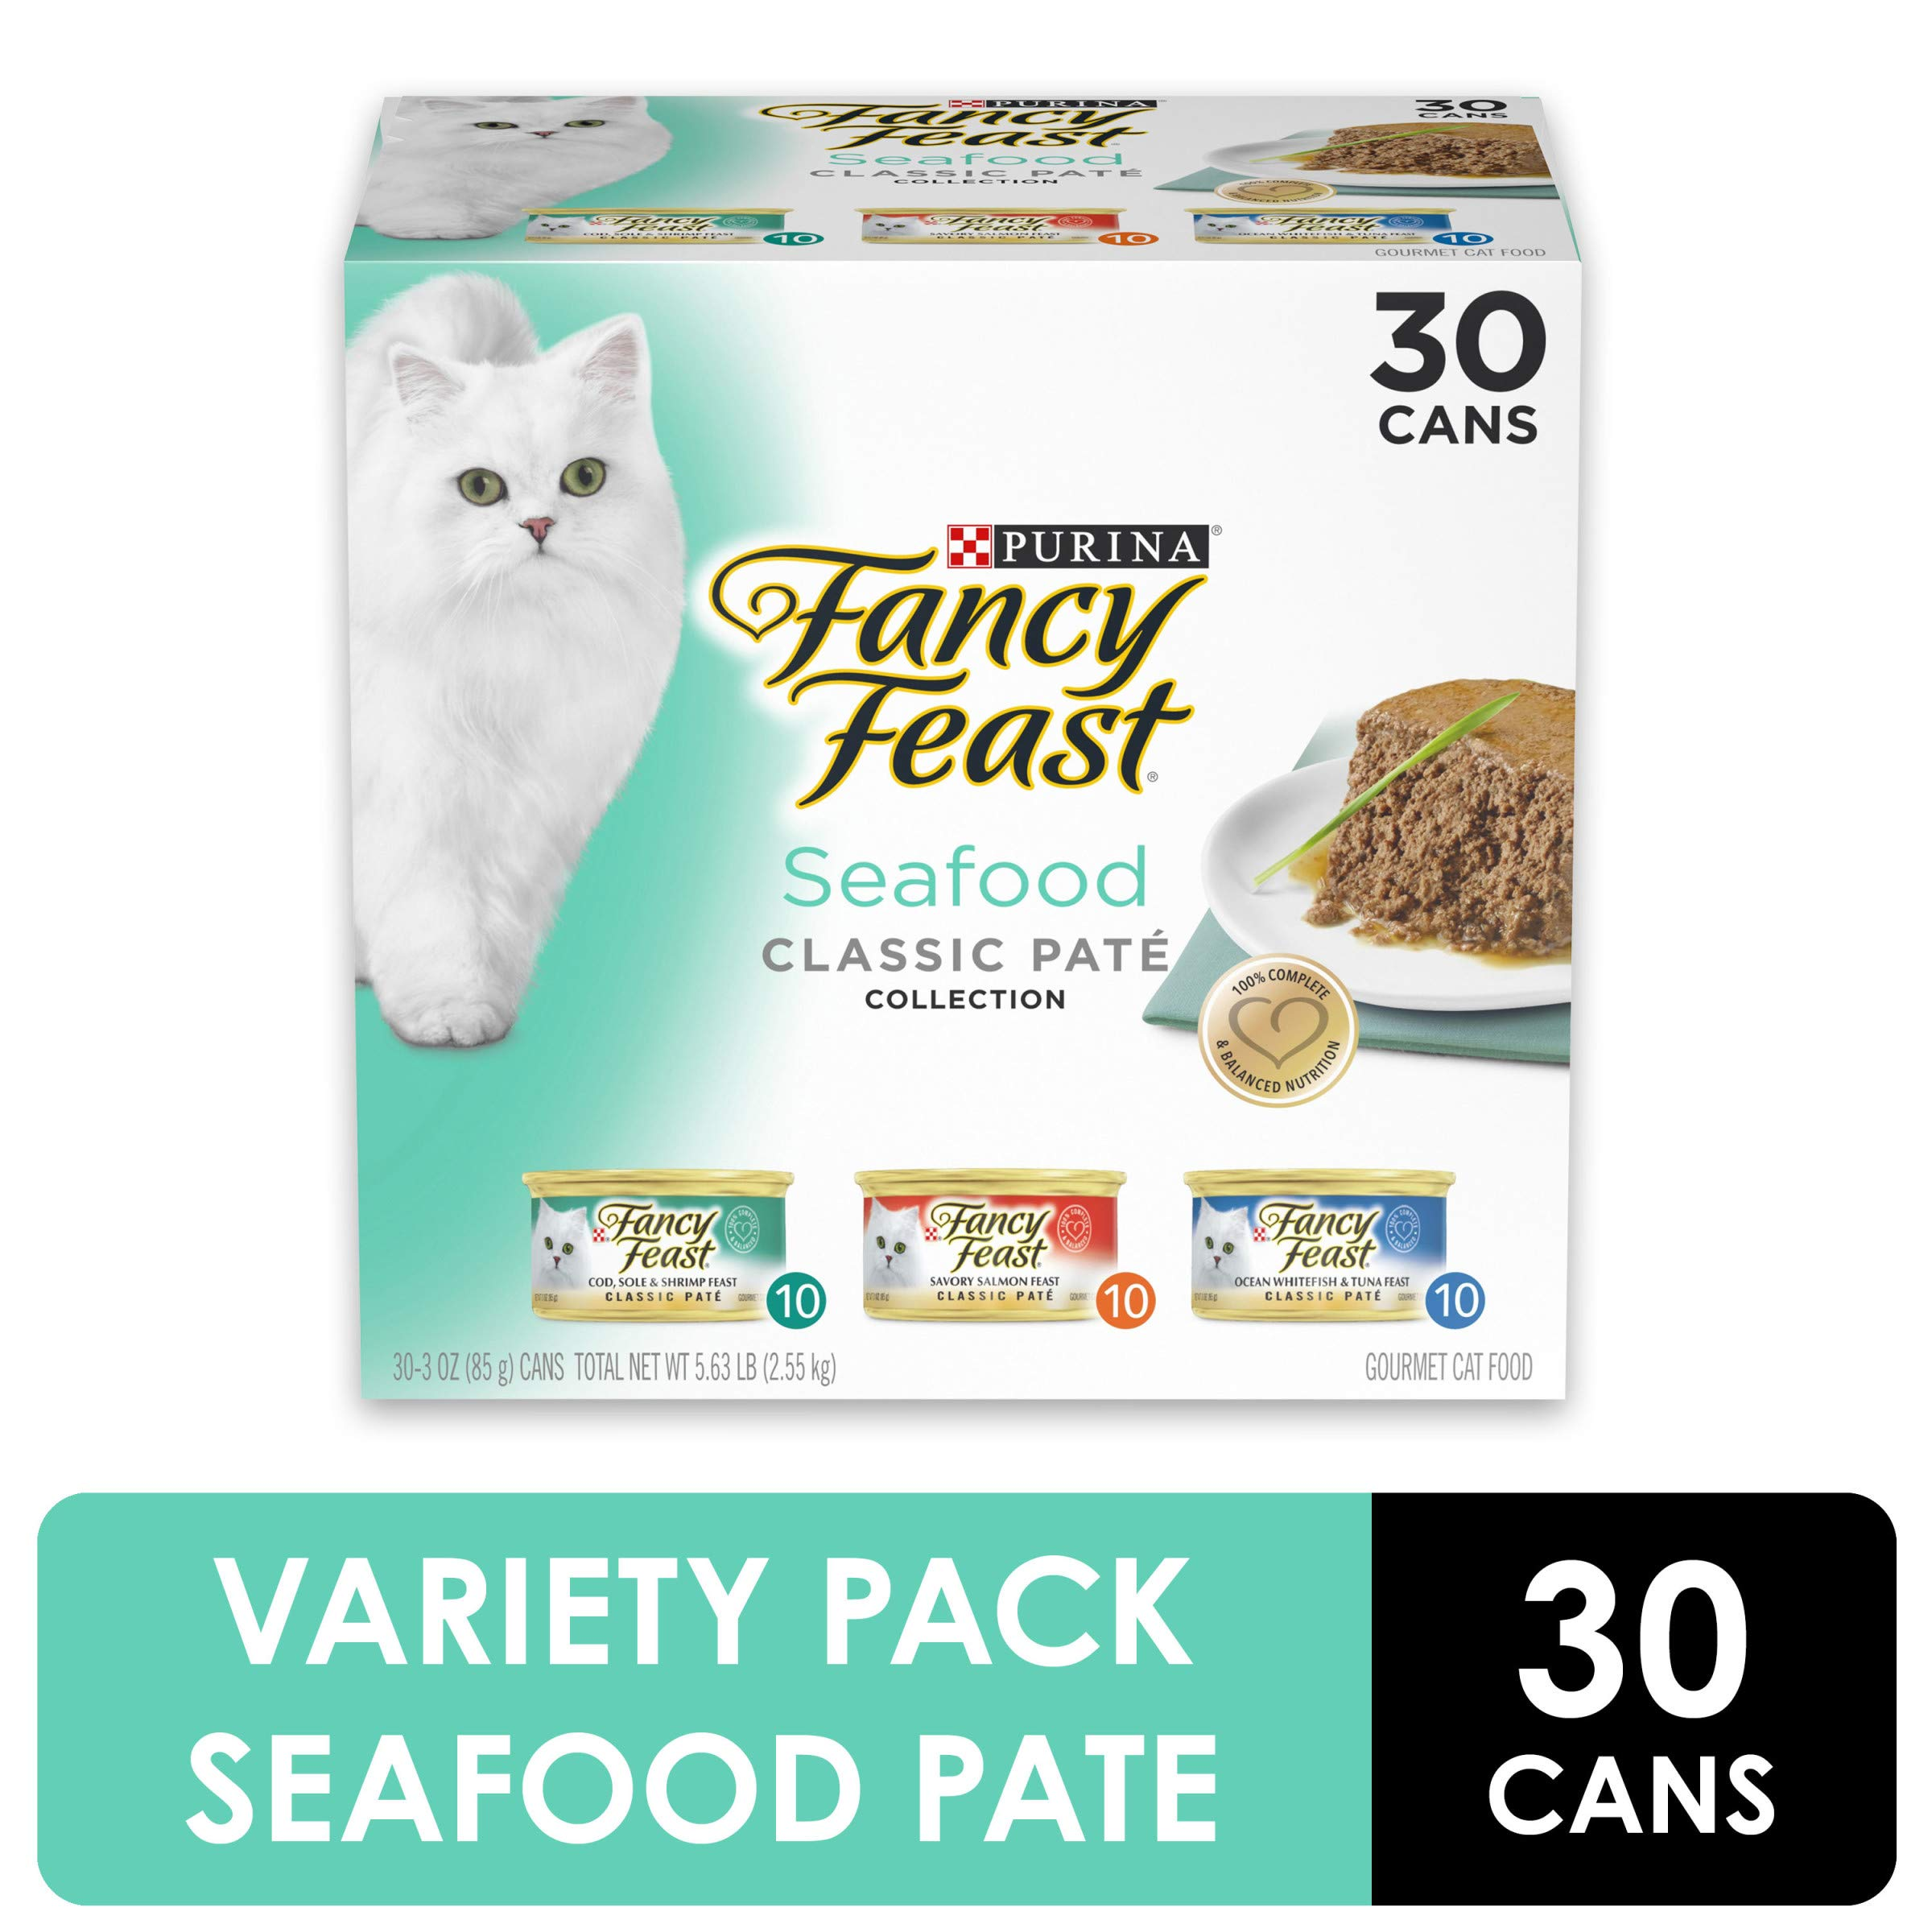 Purina Fancy Feast Grain Free Pate Wet Cat Food Variety Pack, Seafood Classic Pate Collection - (30) 3 oz. Cans by Fancy Feast